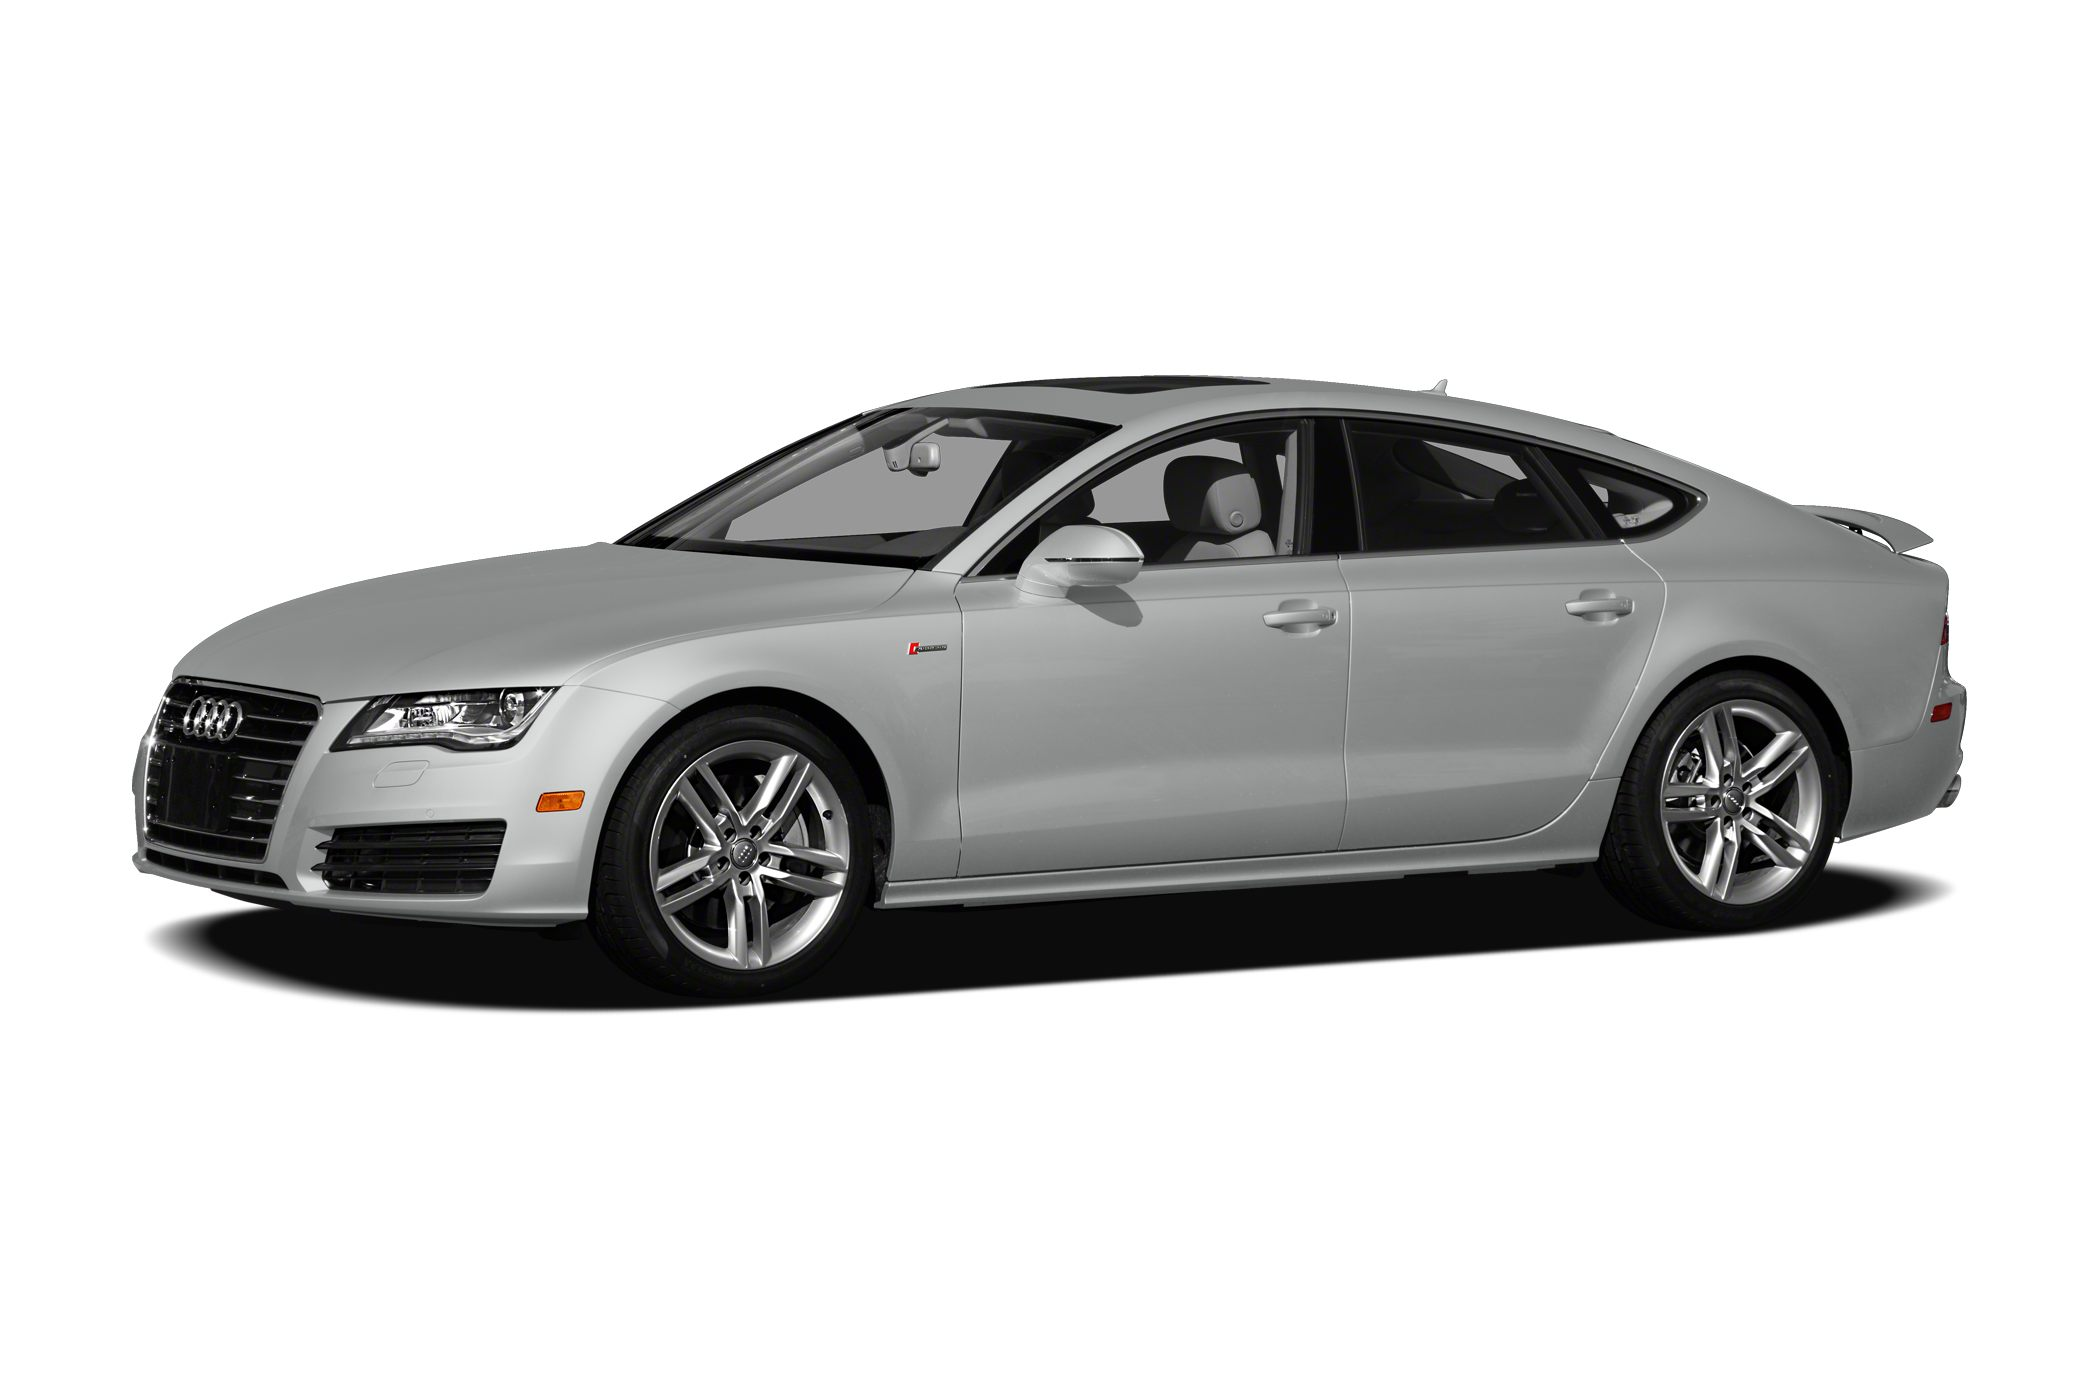 2012 Audi A7 30T quattro Premium PREMIUM PLUS PKGLOW MILESFULLY LOADEDAWD READY FOR ANY W